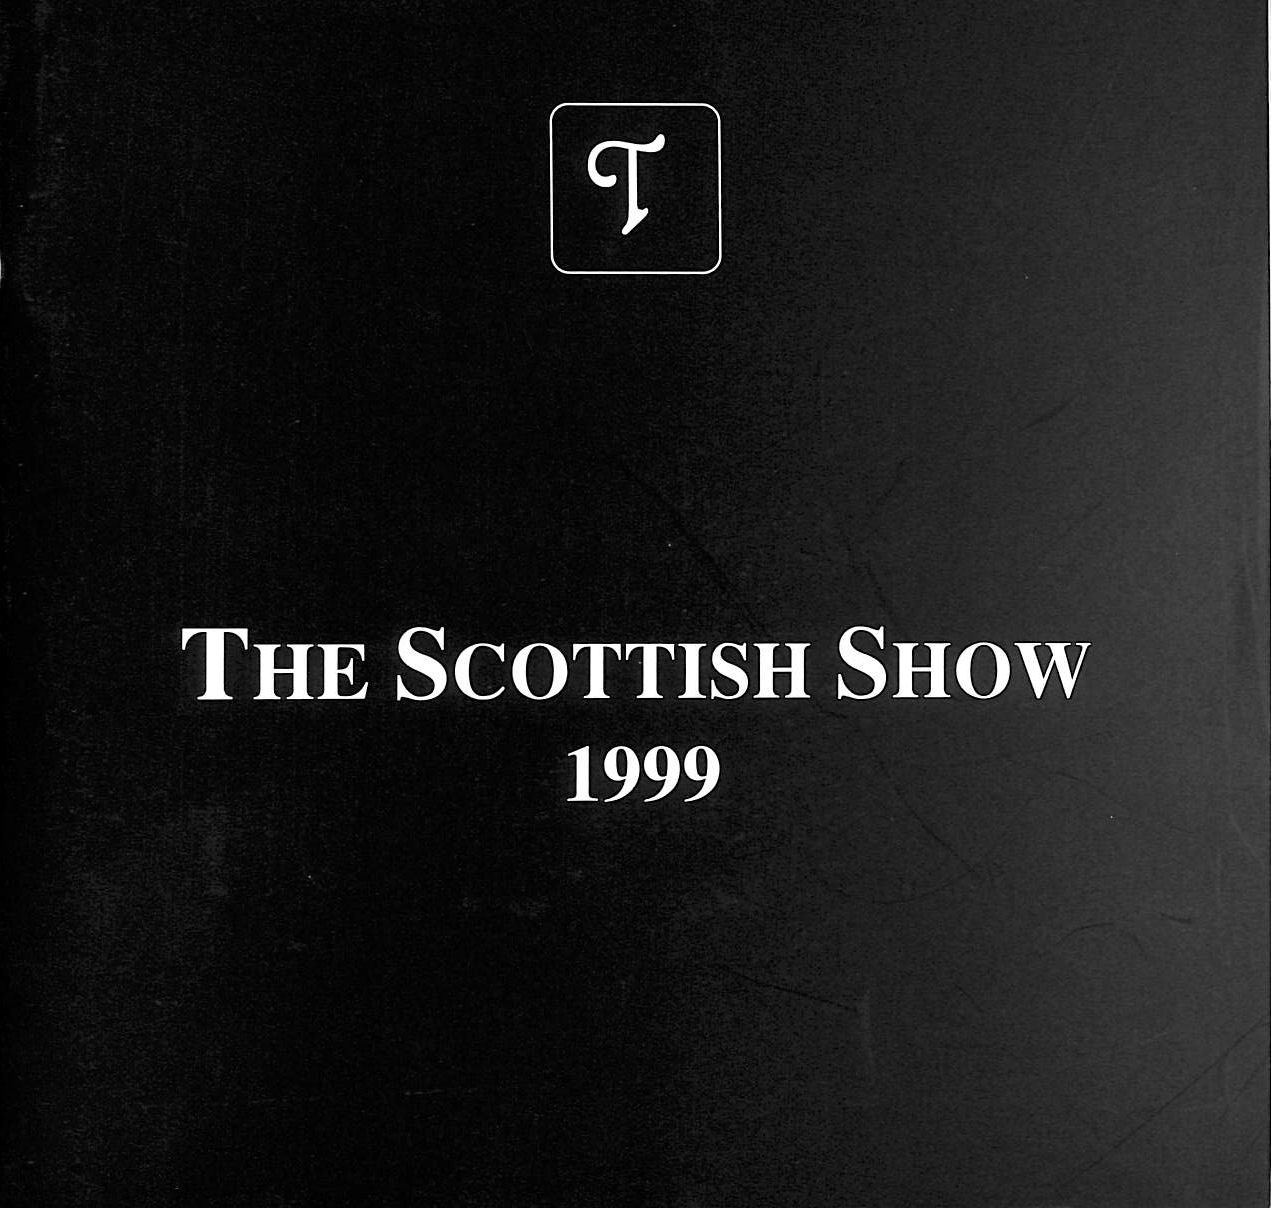 Image for The Scottish Show 1999